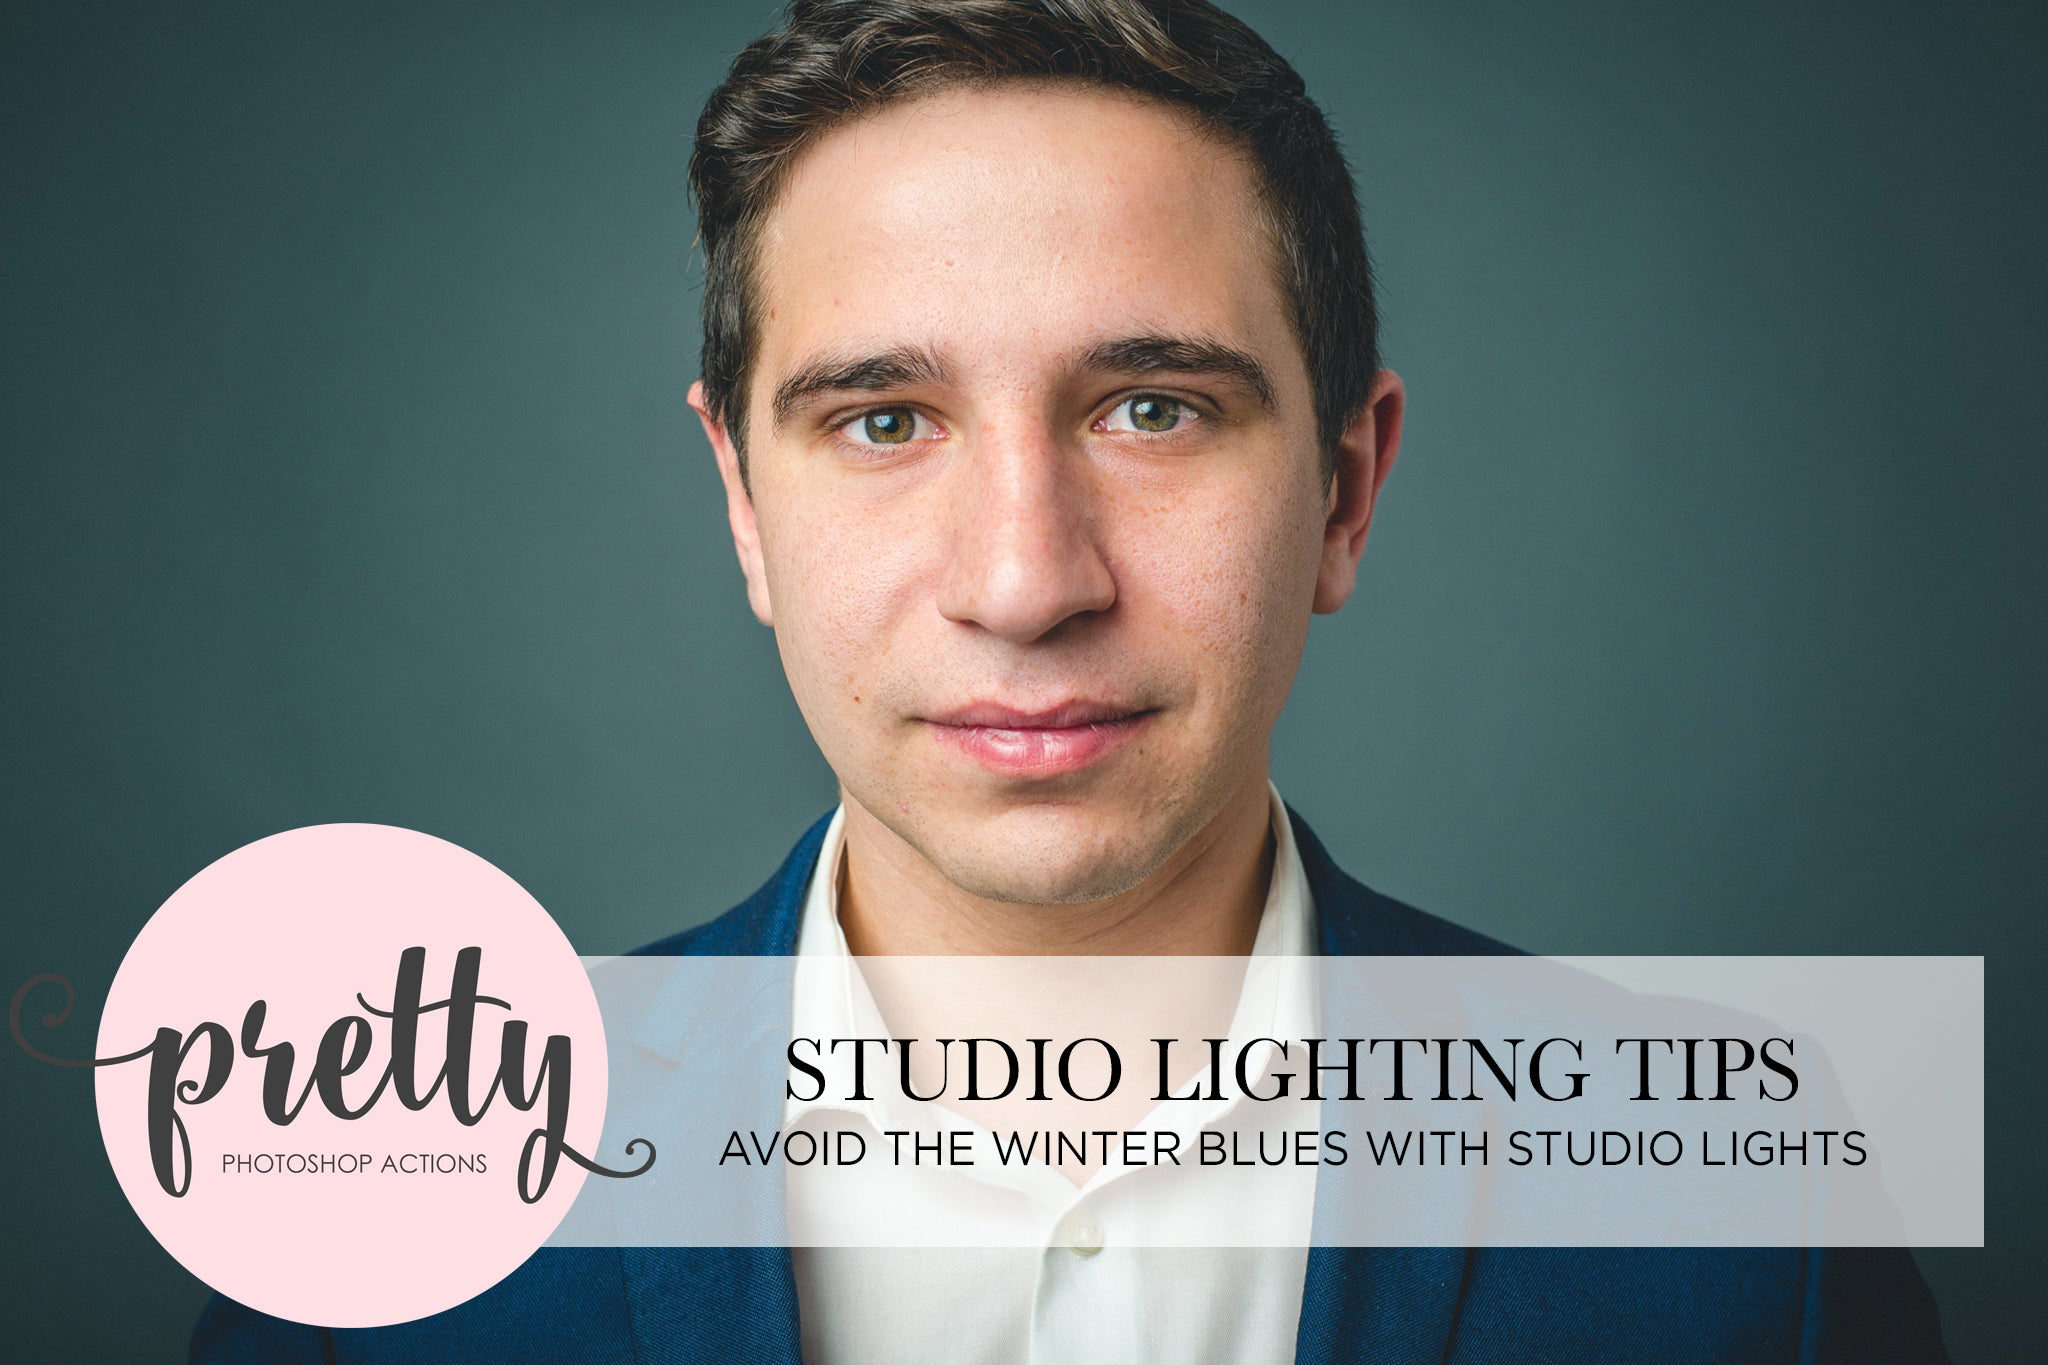 Studio Lighting Tips Avoiding the winter blues with studio lighting